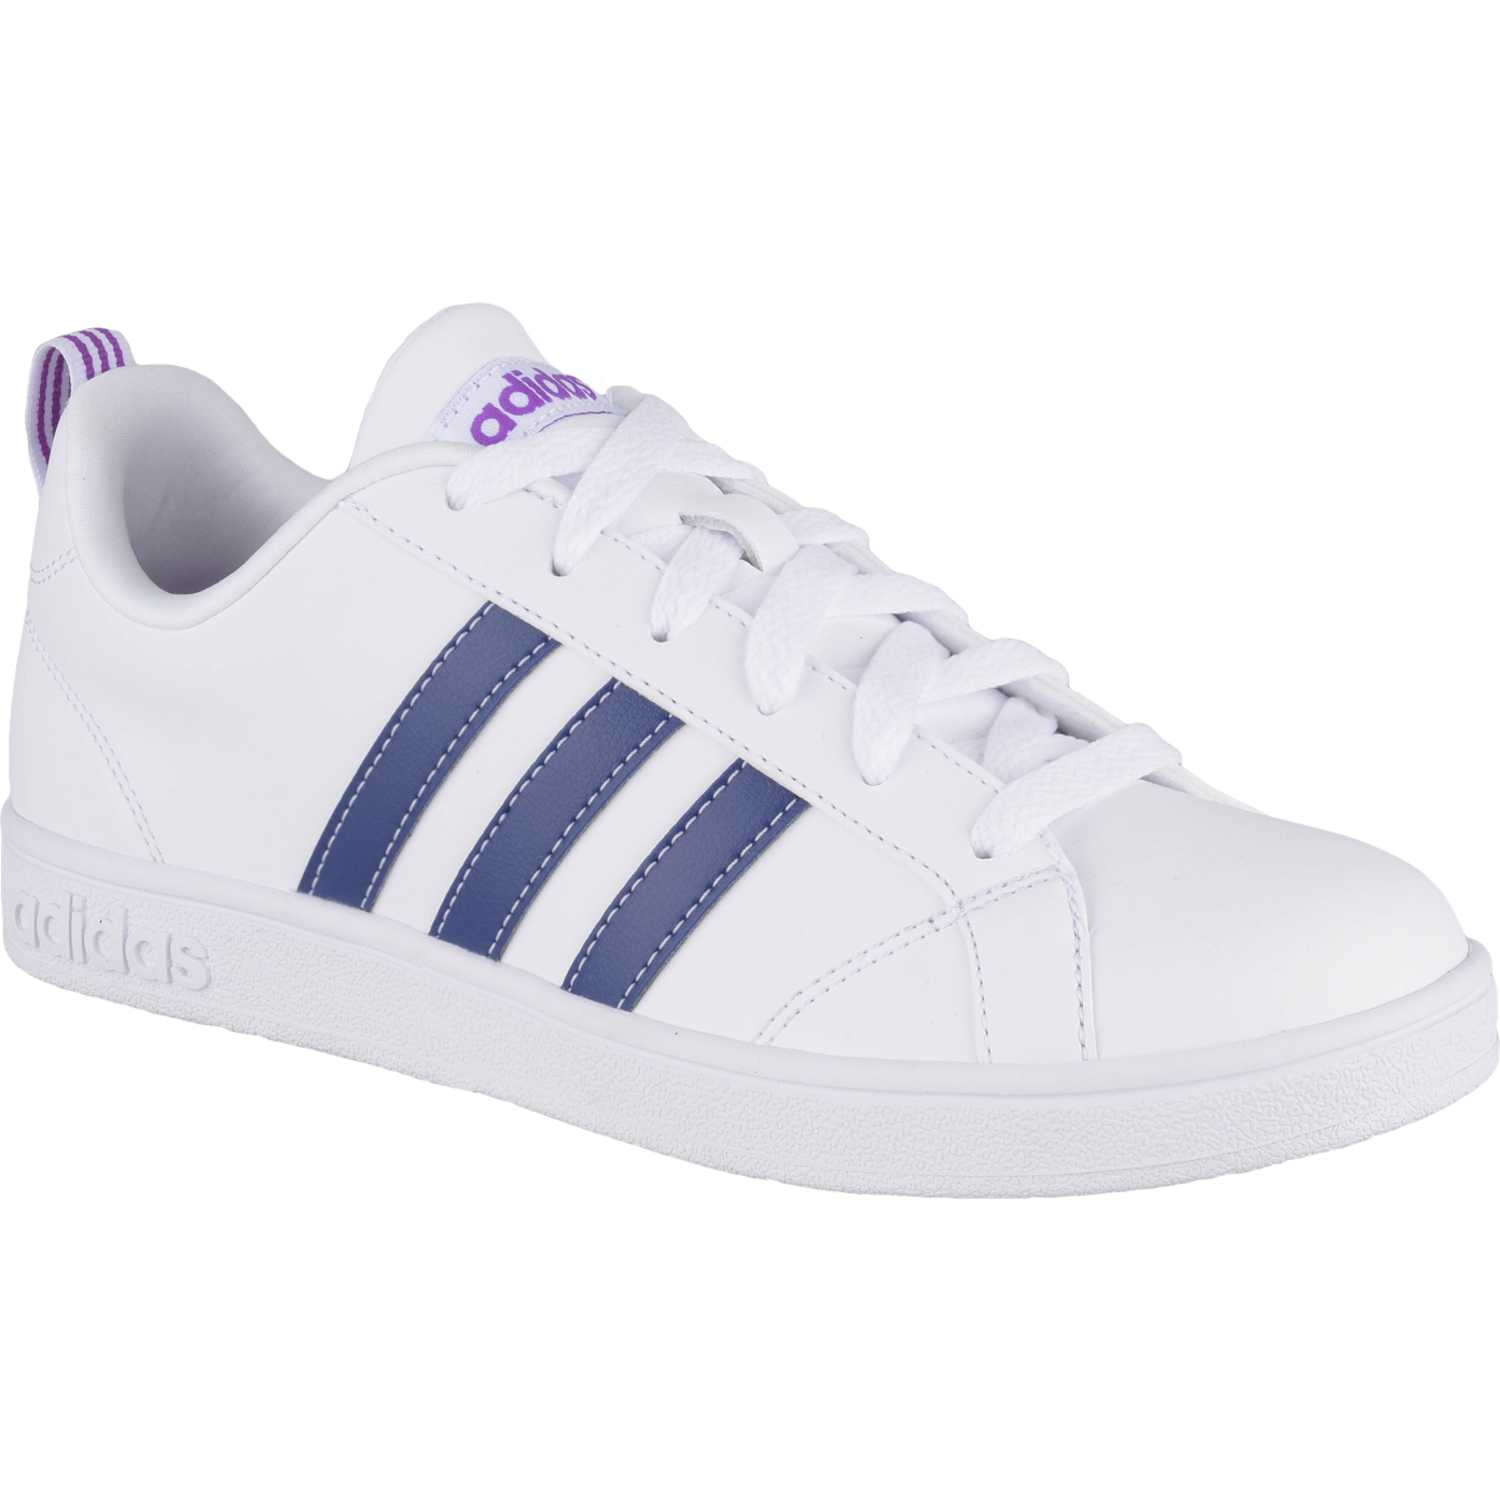 adidas NEO vs advantage Blanco azul Walking |